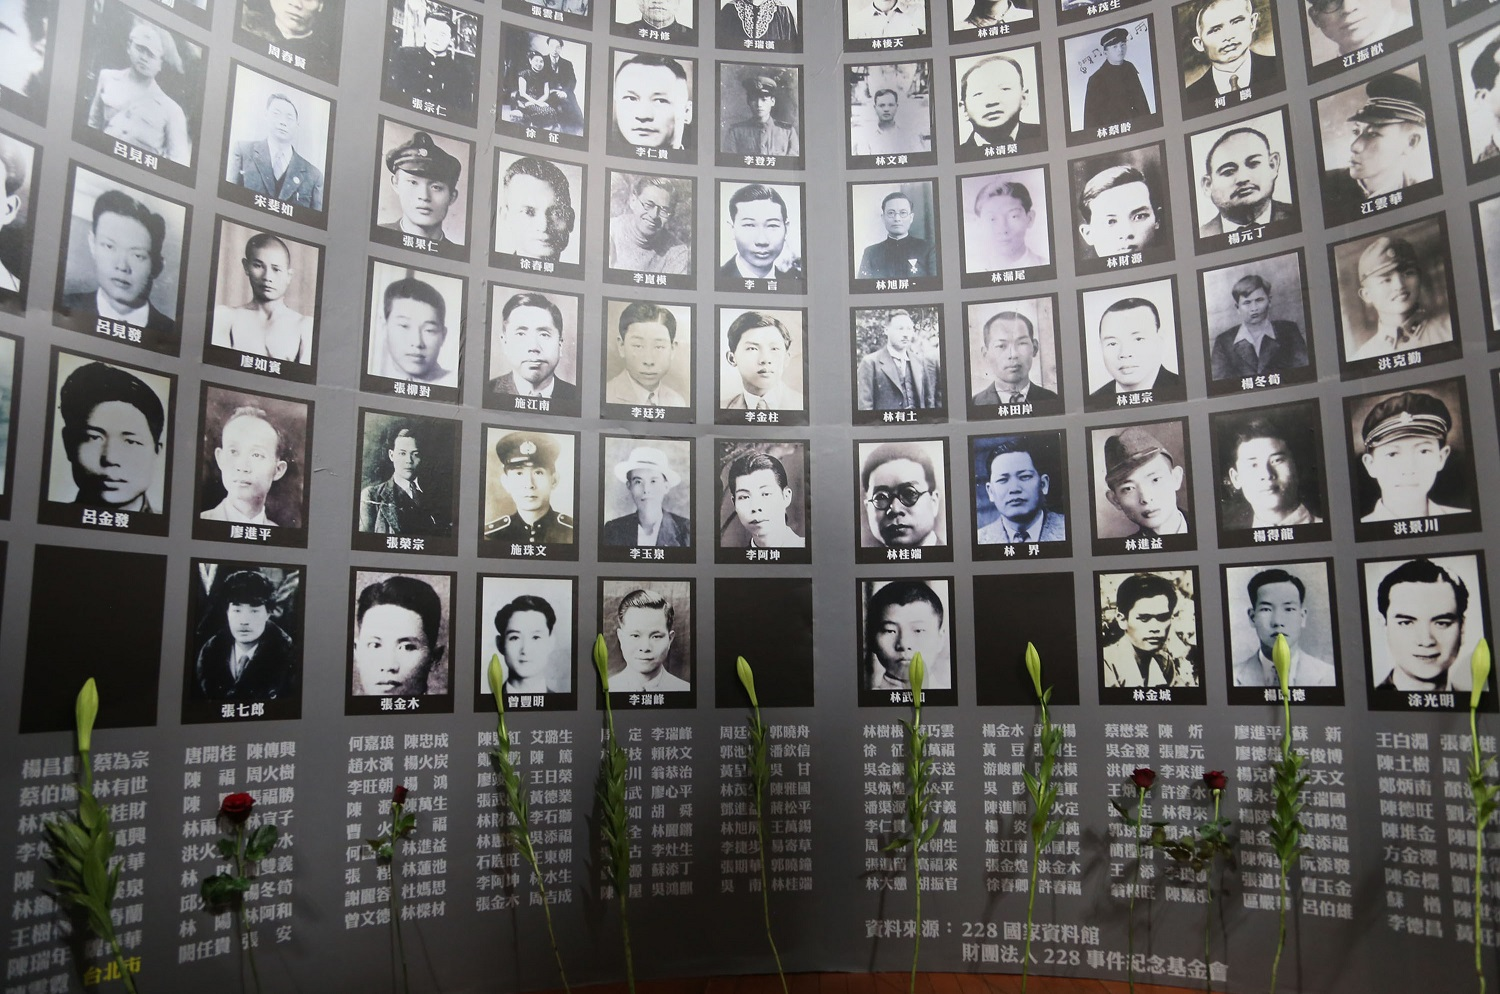 Exhibit on 228 Incident in Tainan